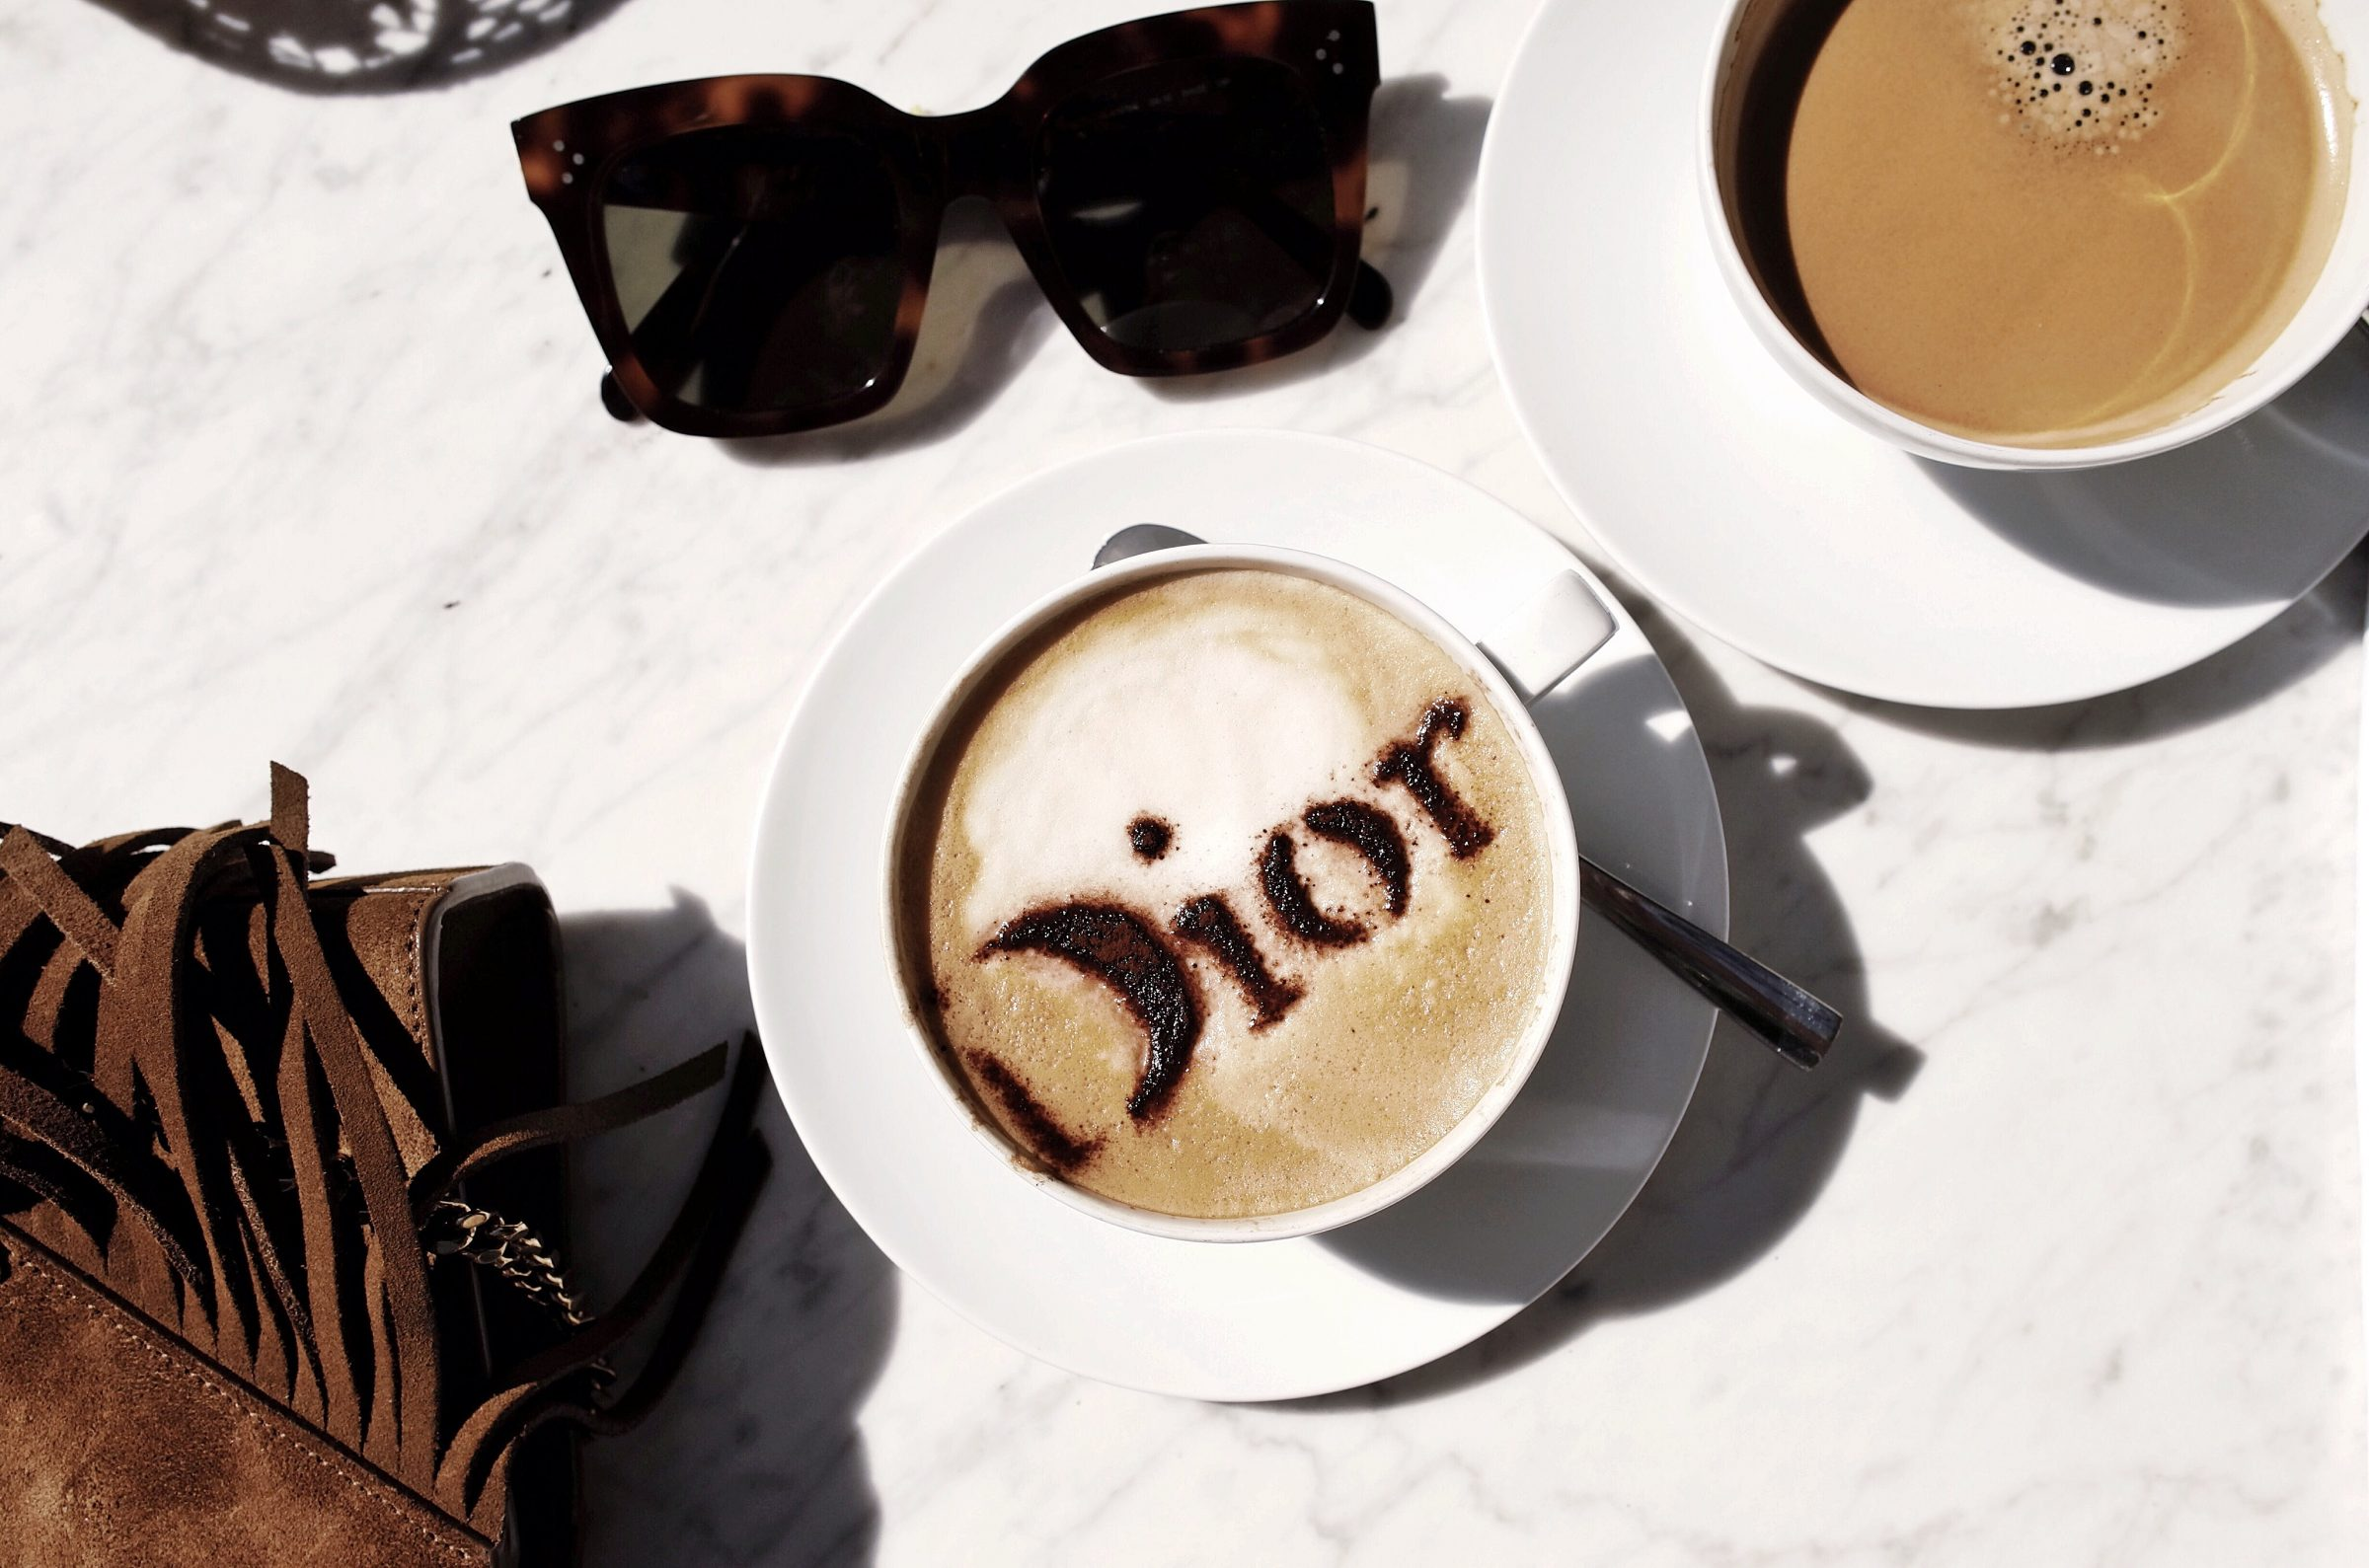 marianna hewitt where to lunch st tropez dior cafe coffee cappuccino celine sunglasses flat lay blogger travel